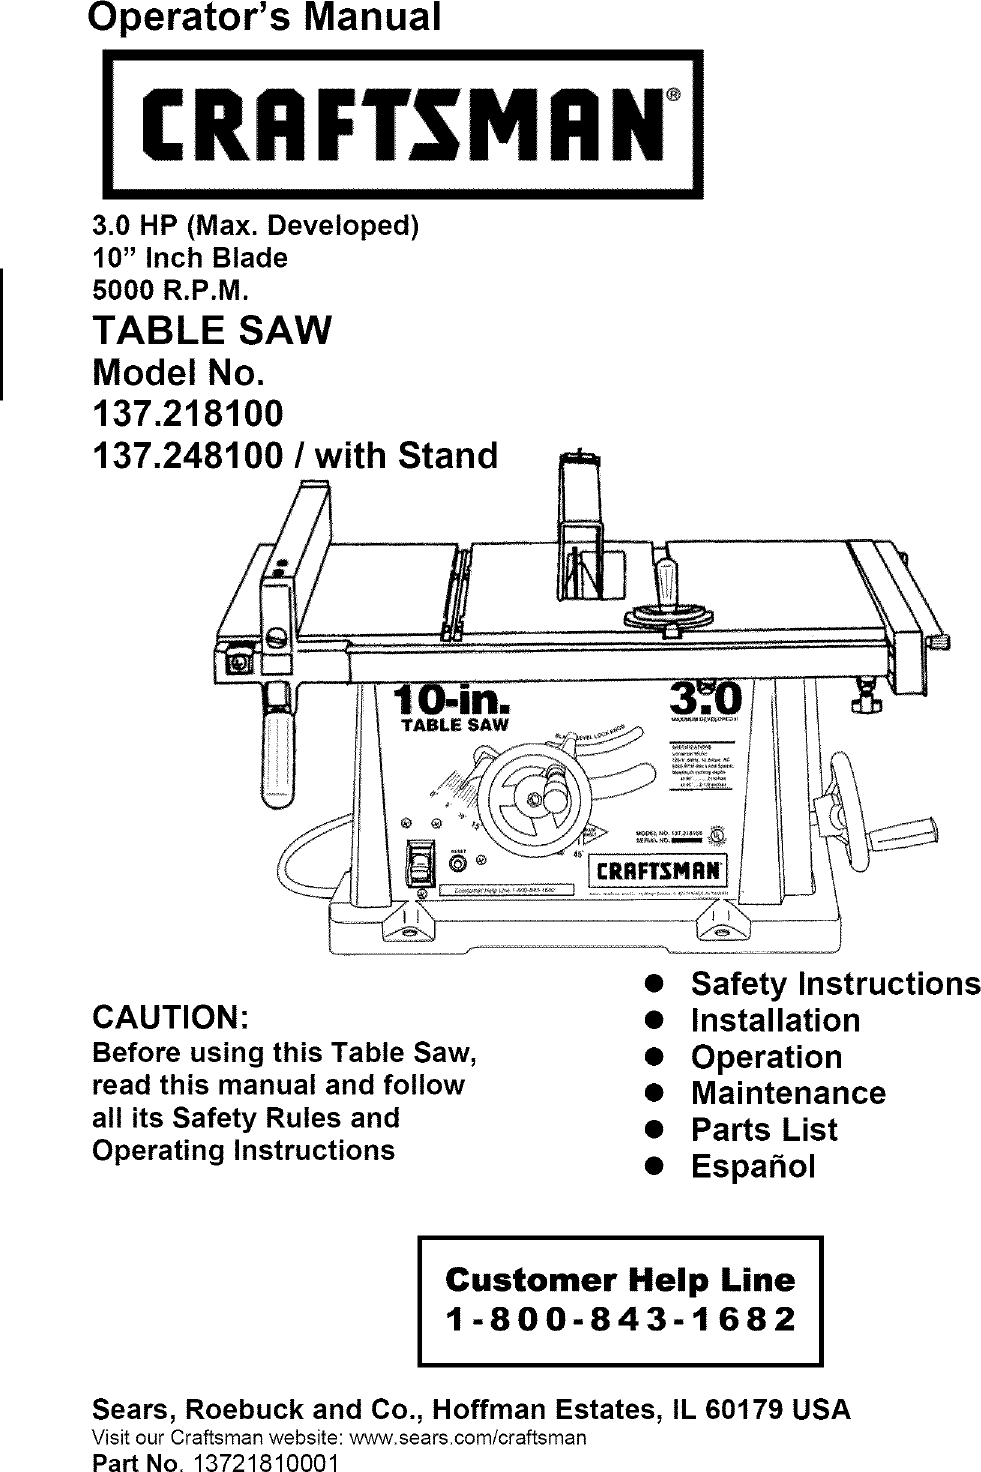 Sears 10 table saw wiring diagram wiring diagram sears 10 table saw wiring diagram wiring diagrams schematics spray booth wiring diagram craftsman 137248830 table greentooth Images